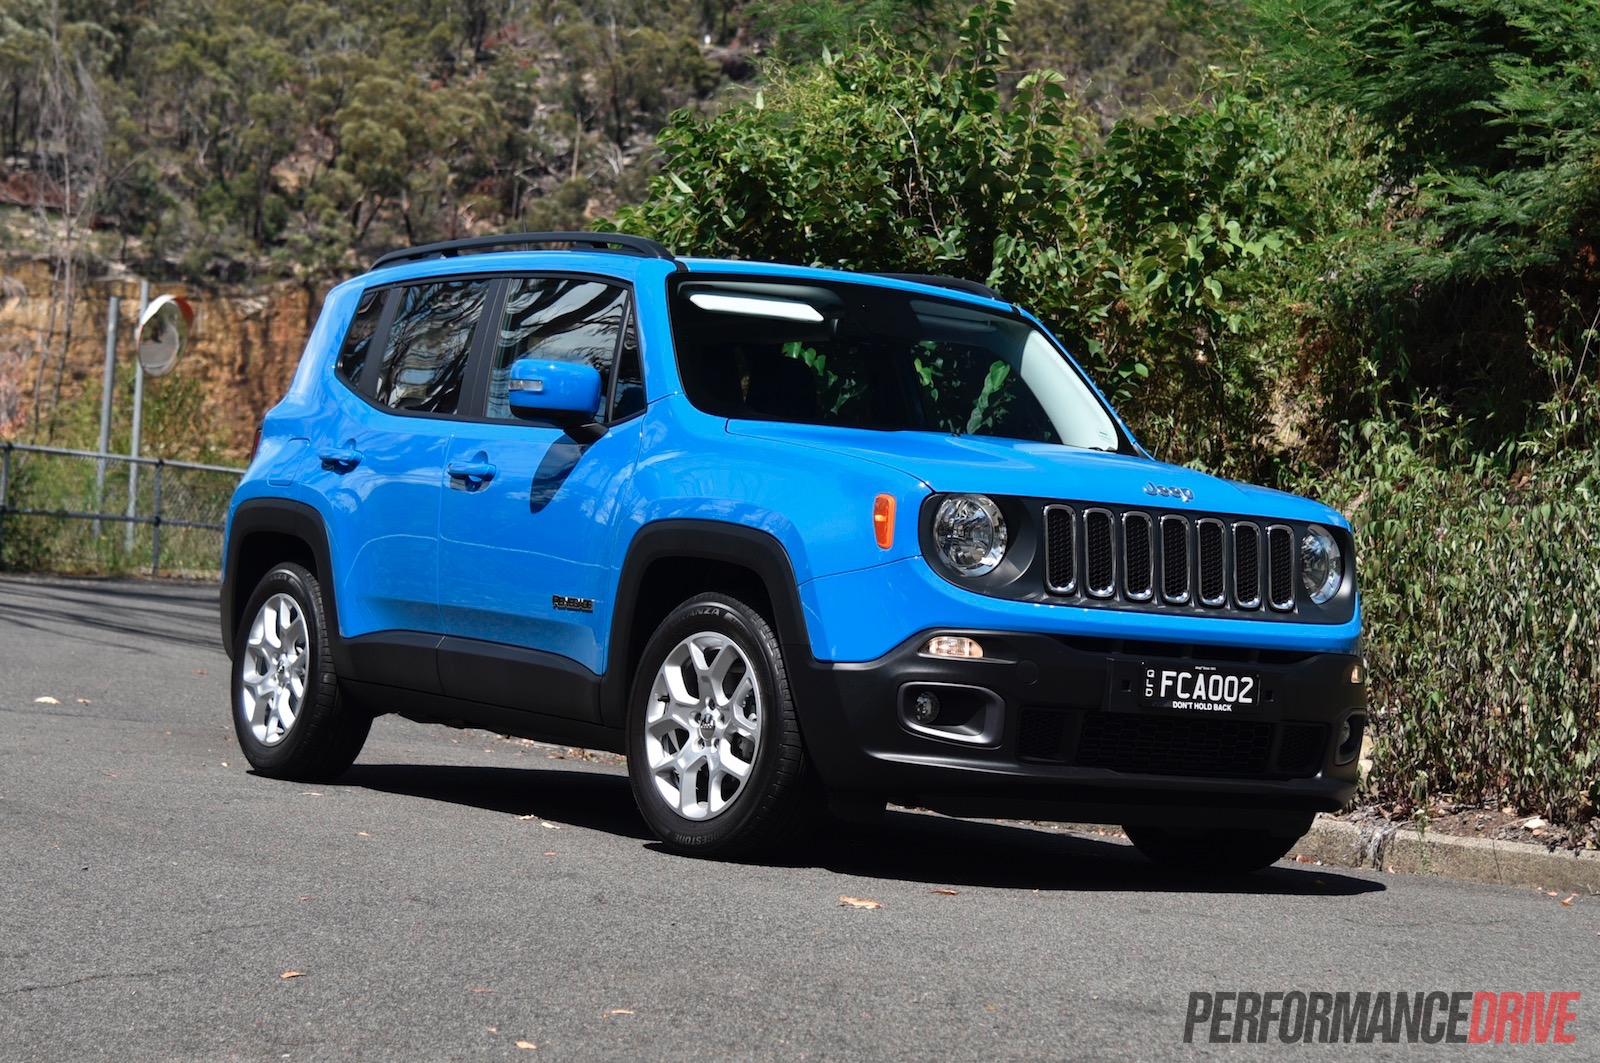 2016 Jeep Renegade Longitude review (video) | PerformanceDrive